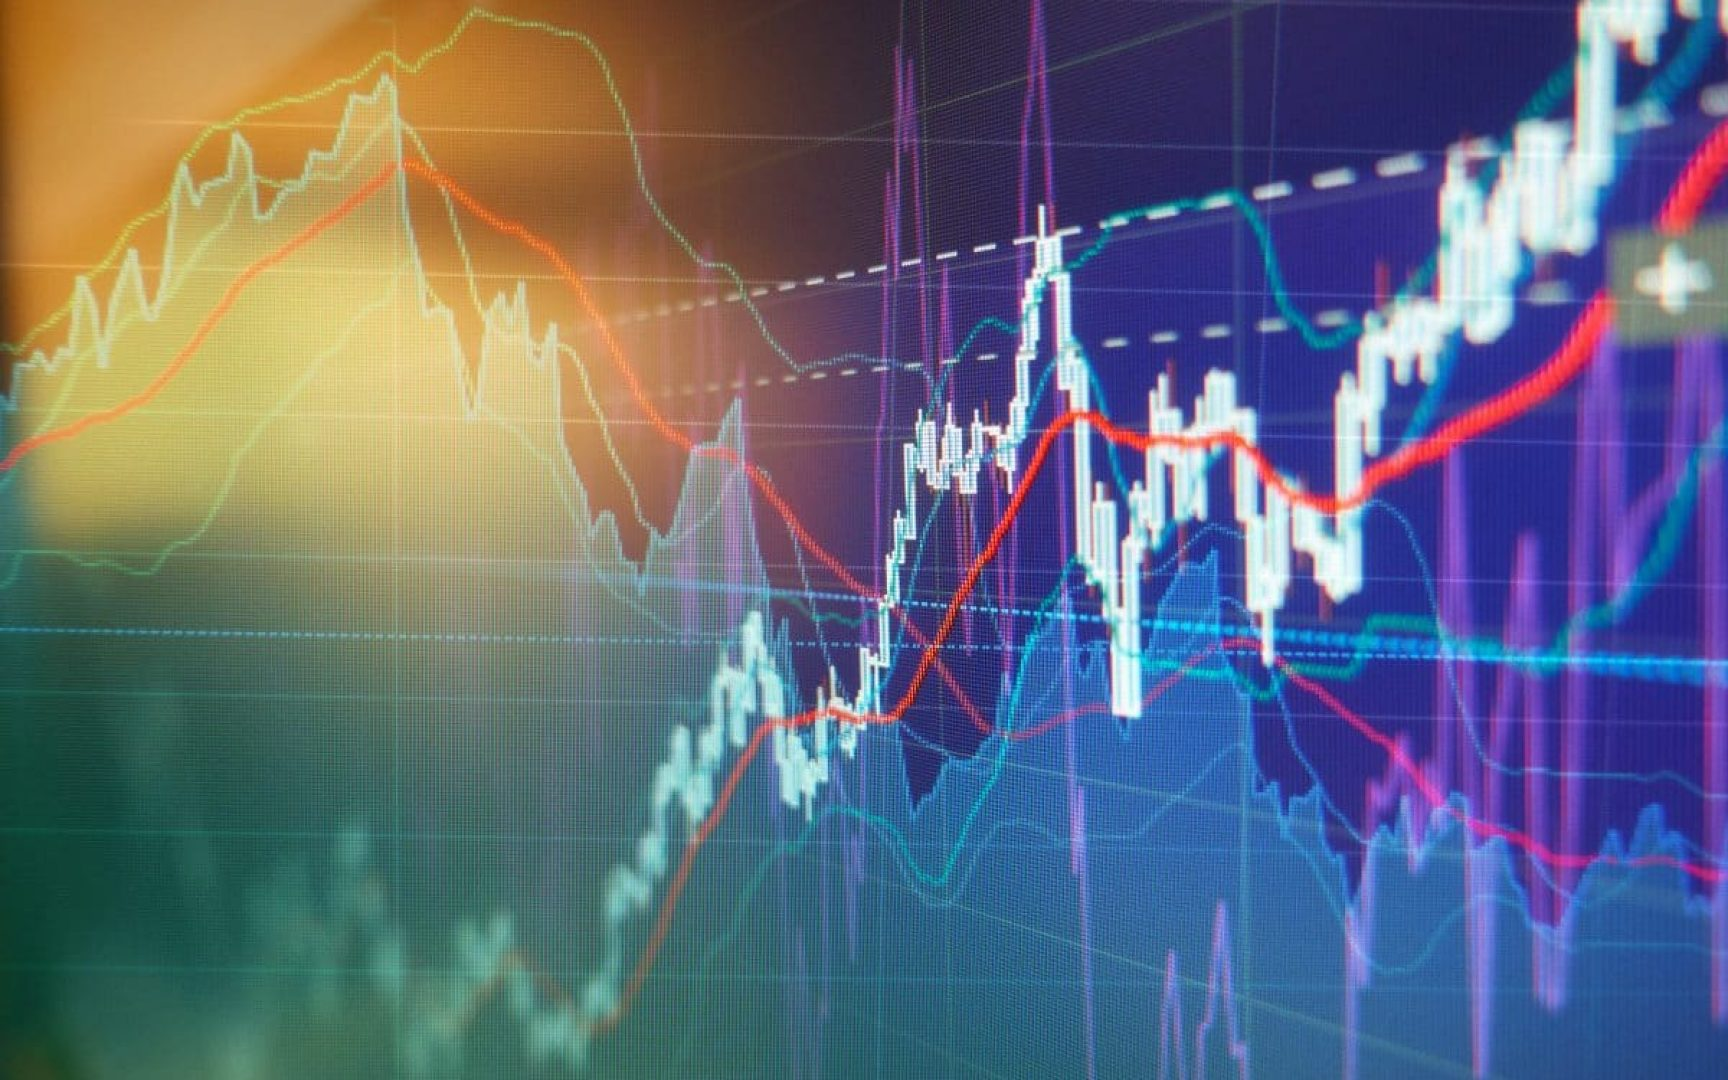 Graph charts of stock market investment trading - business background